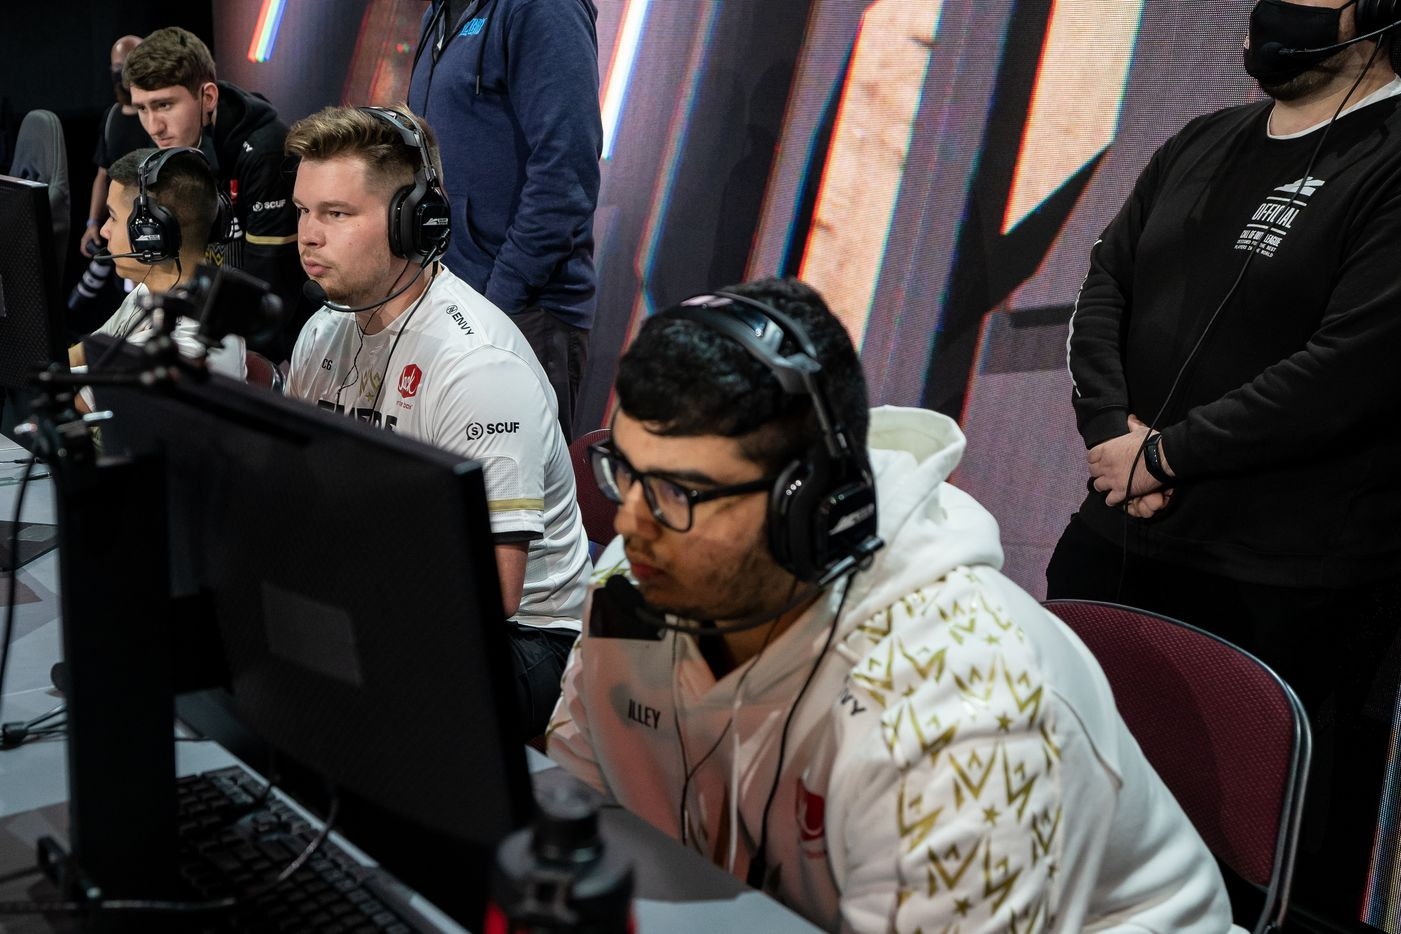 """From left, Ian """"C6"""" Porter and Indervir """"iLLeY"""" Dhaliwal of the Dallas Empire prepare for their elimination match against the Toronto Ultra at the Call of Duty league playoffs at the Galen Center on Saturday, August 21, 2021 in Los Angeles, California. (Justin L. Stewart/Special Contributor)"""